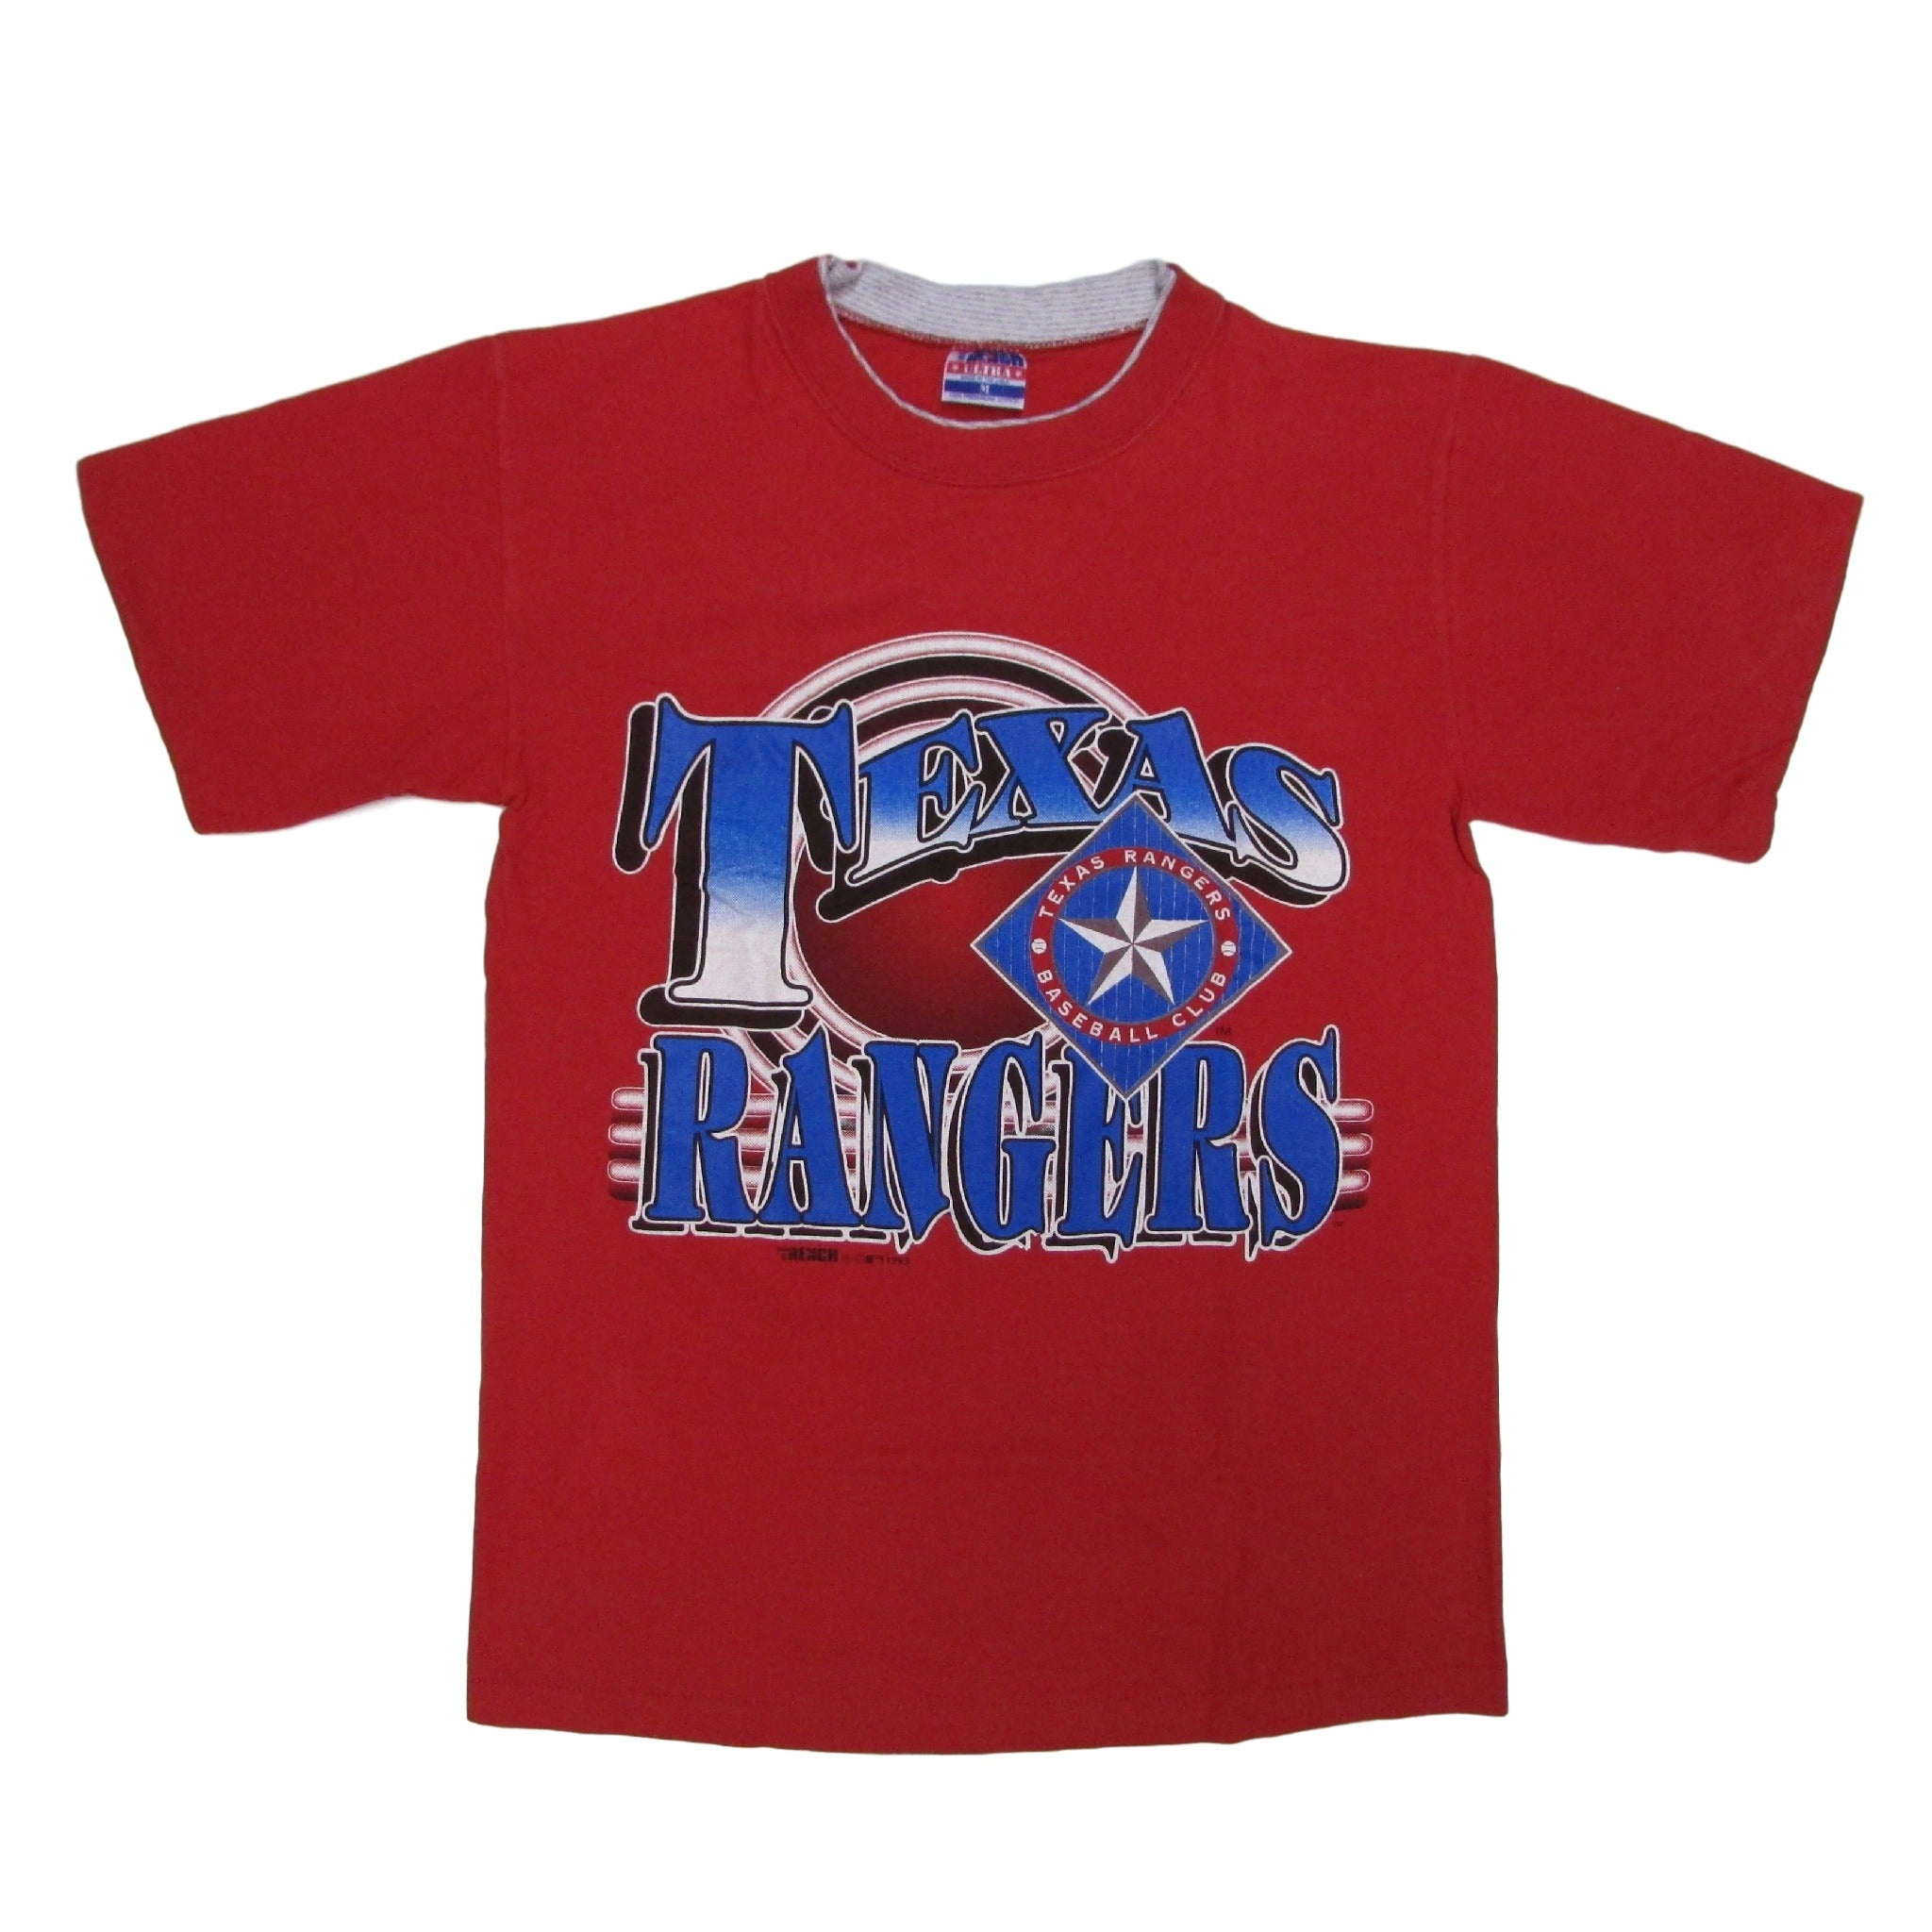 Texas Rangers Vintage Double Collar Baseball T-Shirt TRENCH ULTRA Sz M